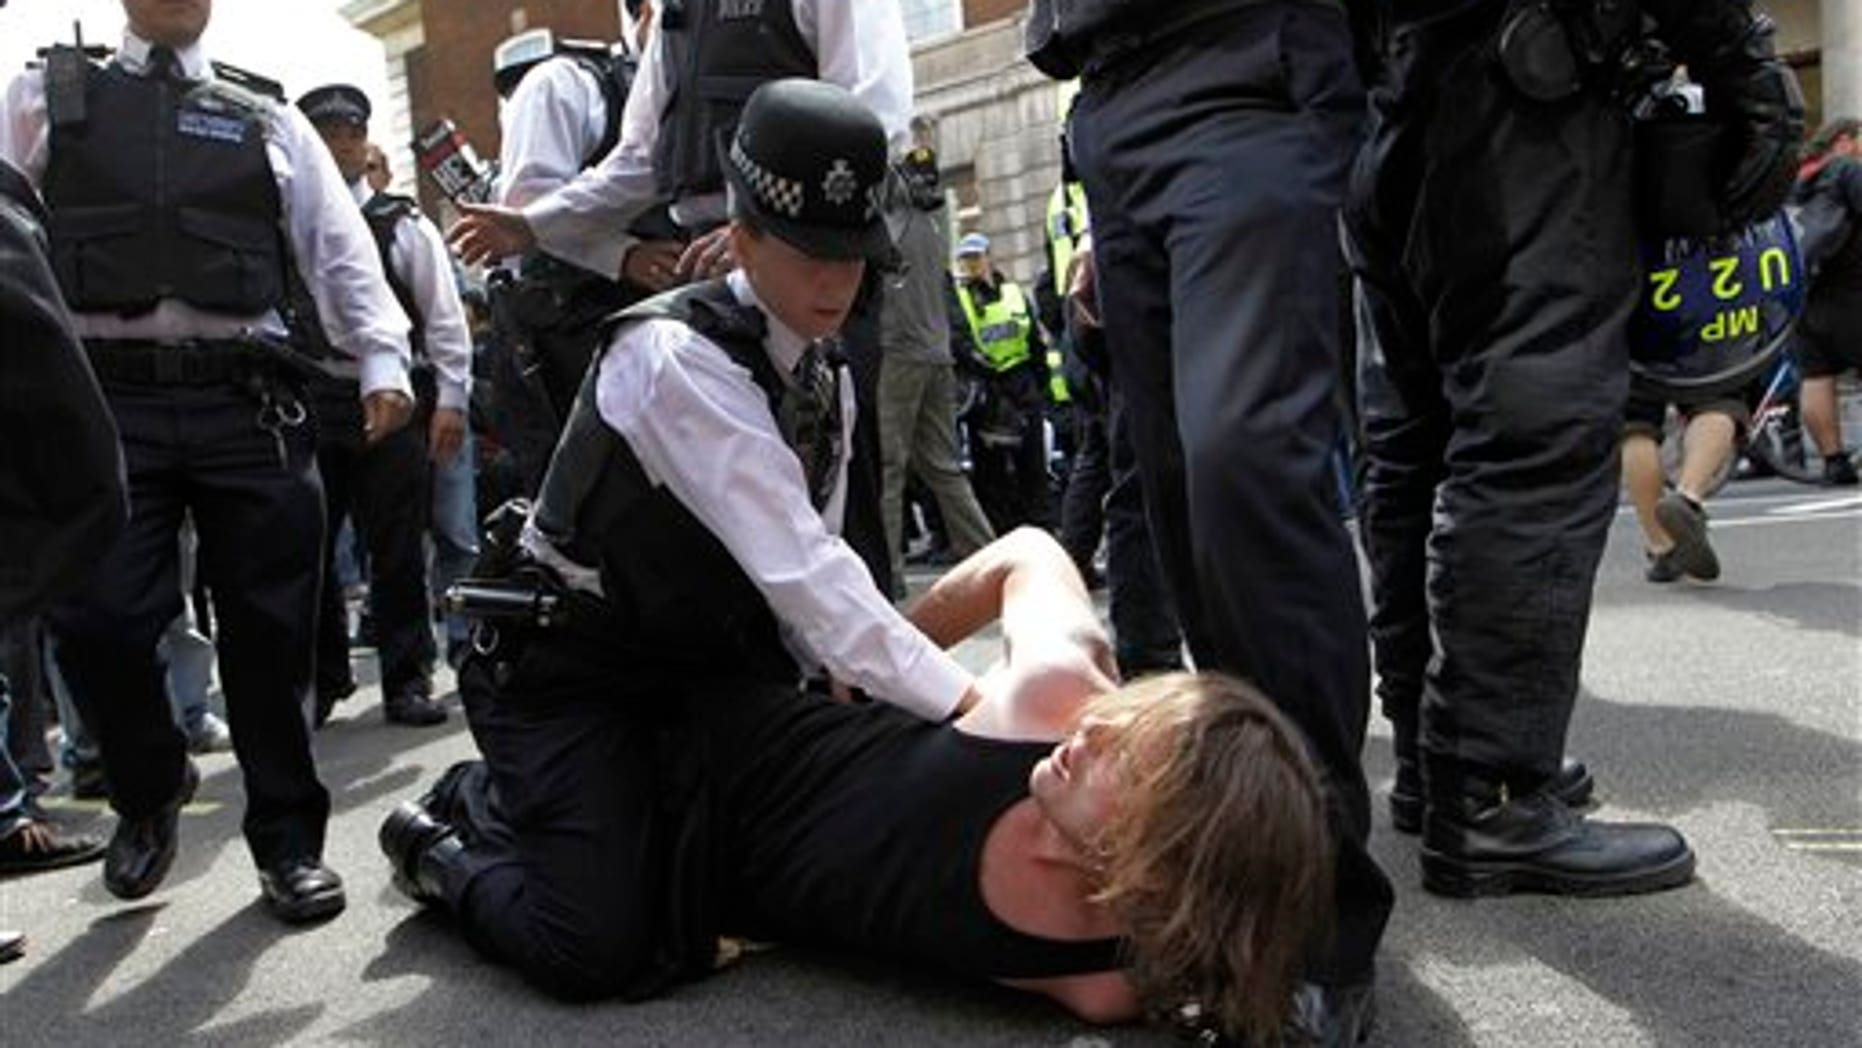 June 30: A British police officer holds down a protester in Whitehall, London as thousands of public sector workers and teachers protest in central London in a one day strike over pension and government cuts. British teachers and public service workers swapped classrooms and offices for picket lines as hundreds of thousands walked off the job to protest pension cuts.